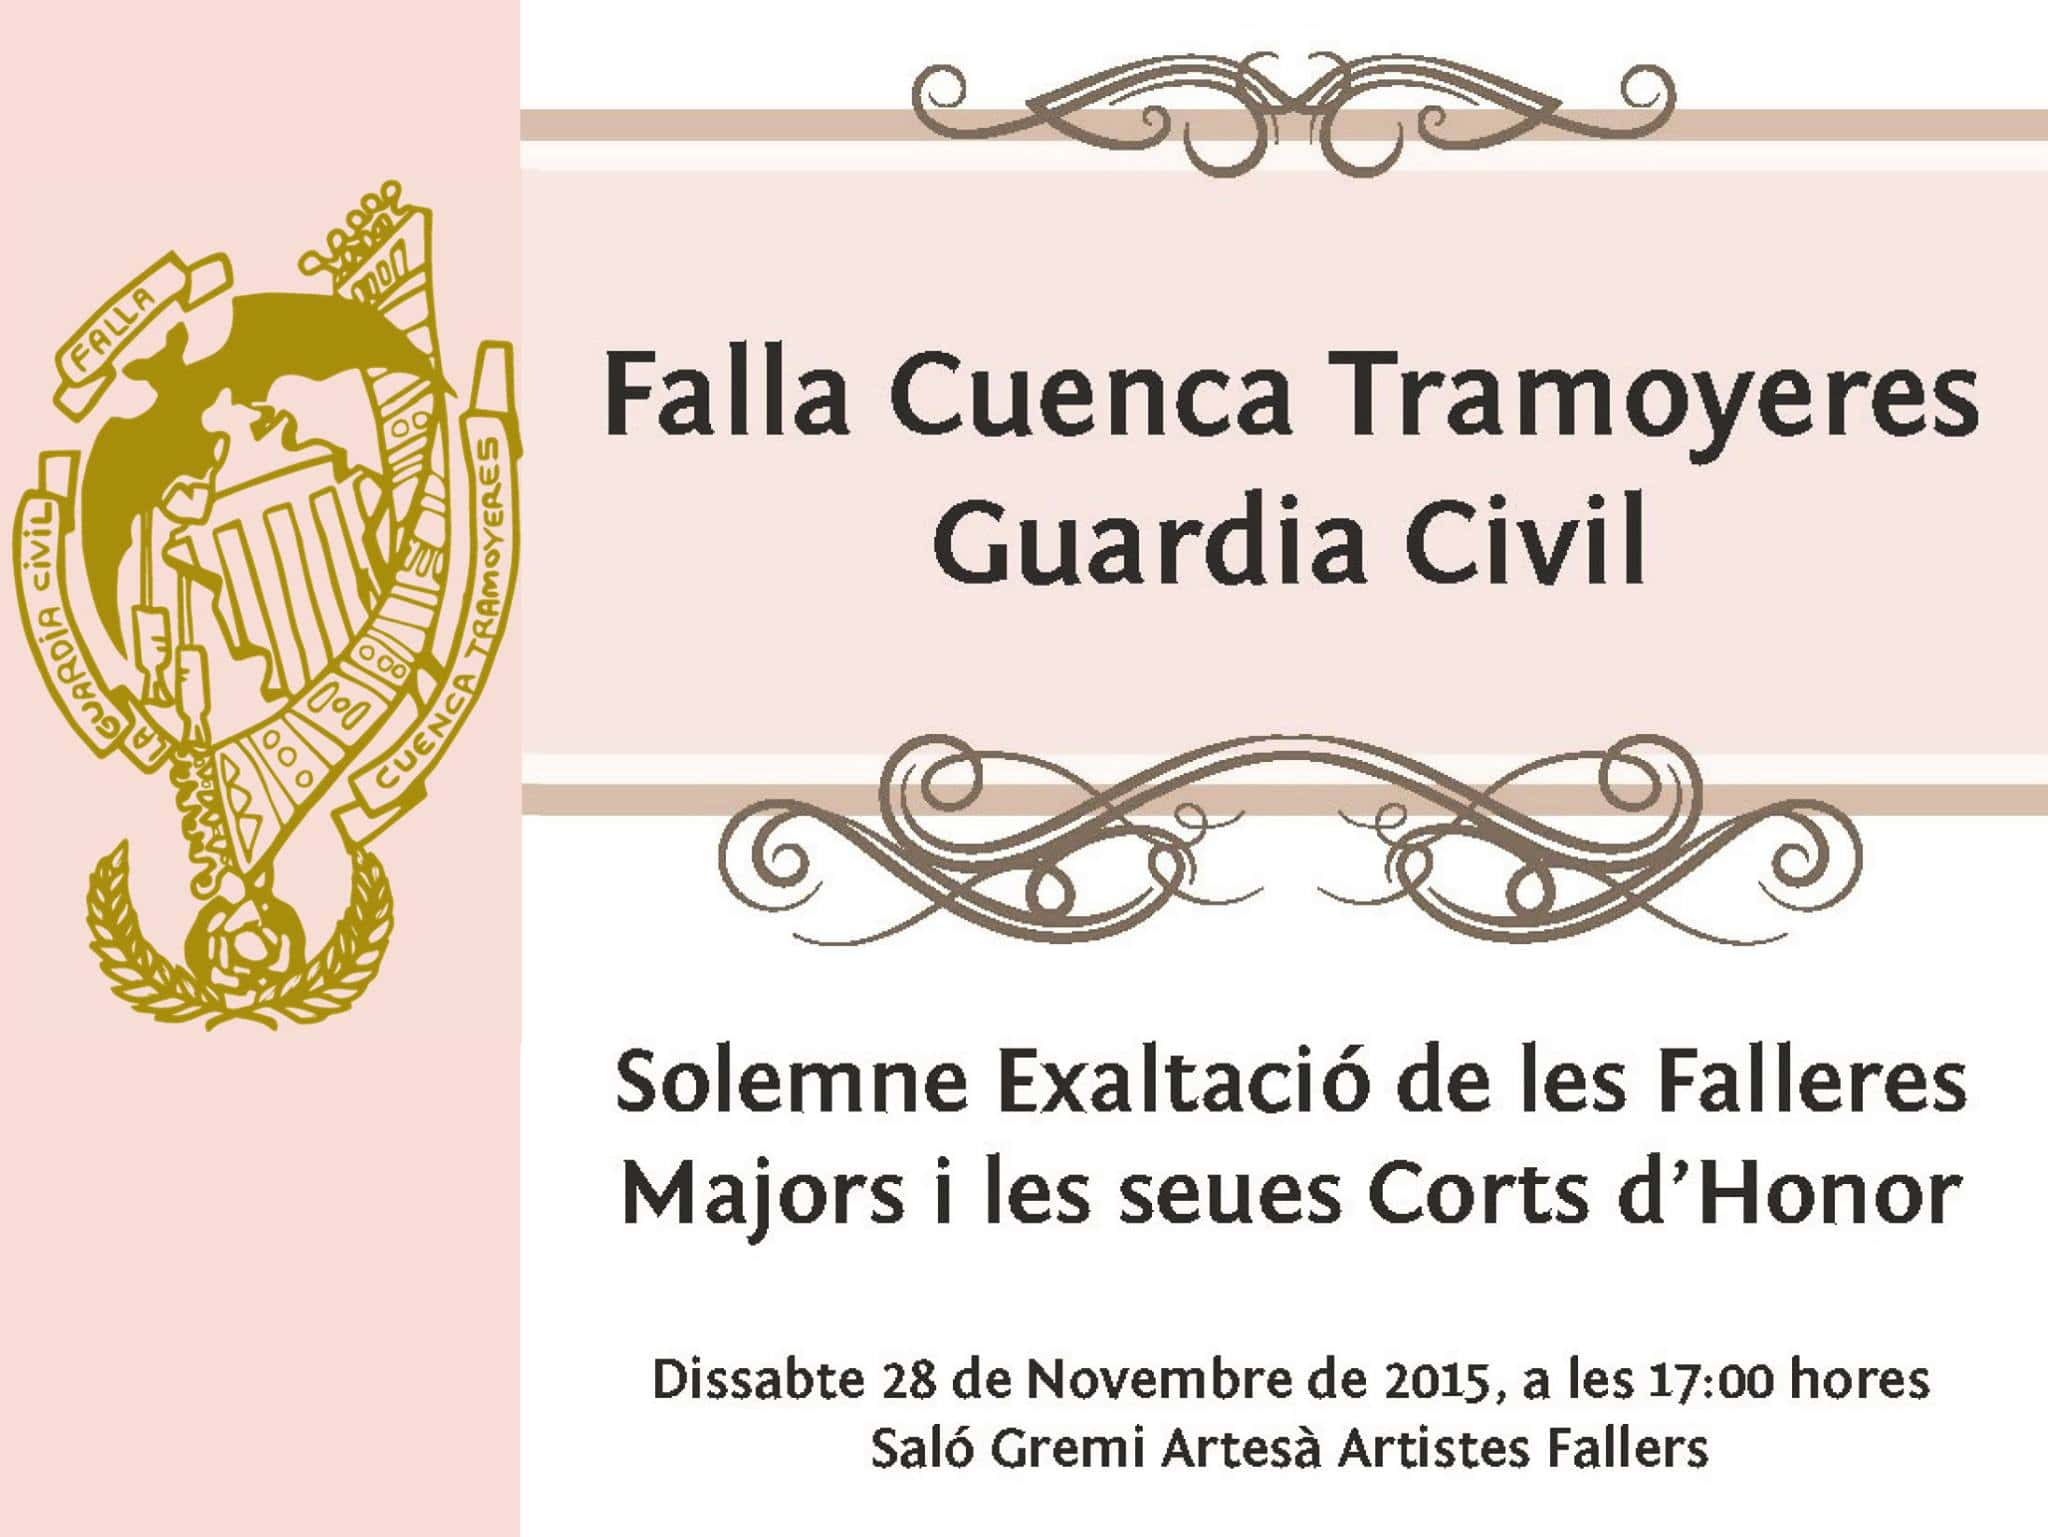 Exaltation of the Falleras older of the Falla basin Tramoyeres-Guardia Civil the Fallas by 2016 1